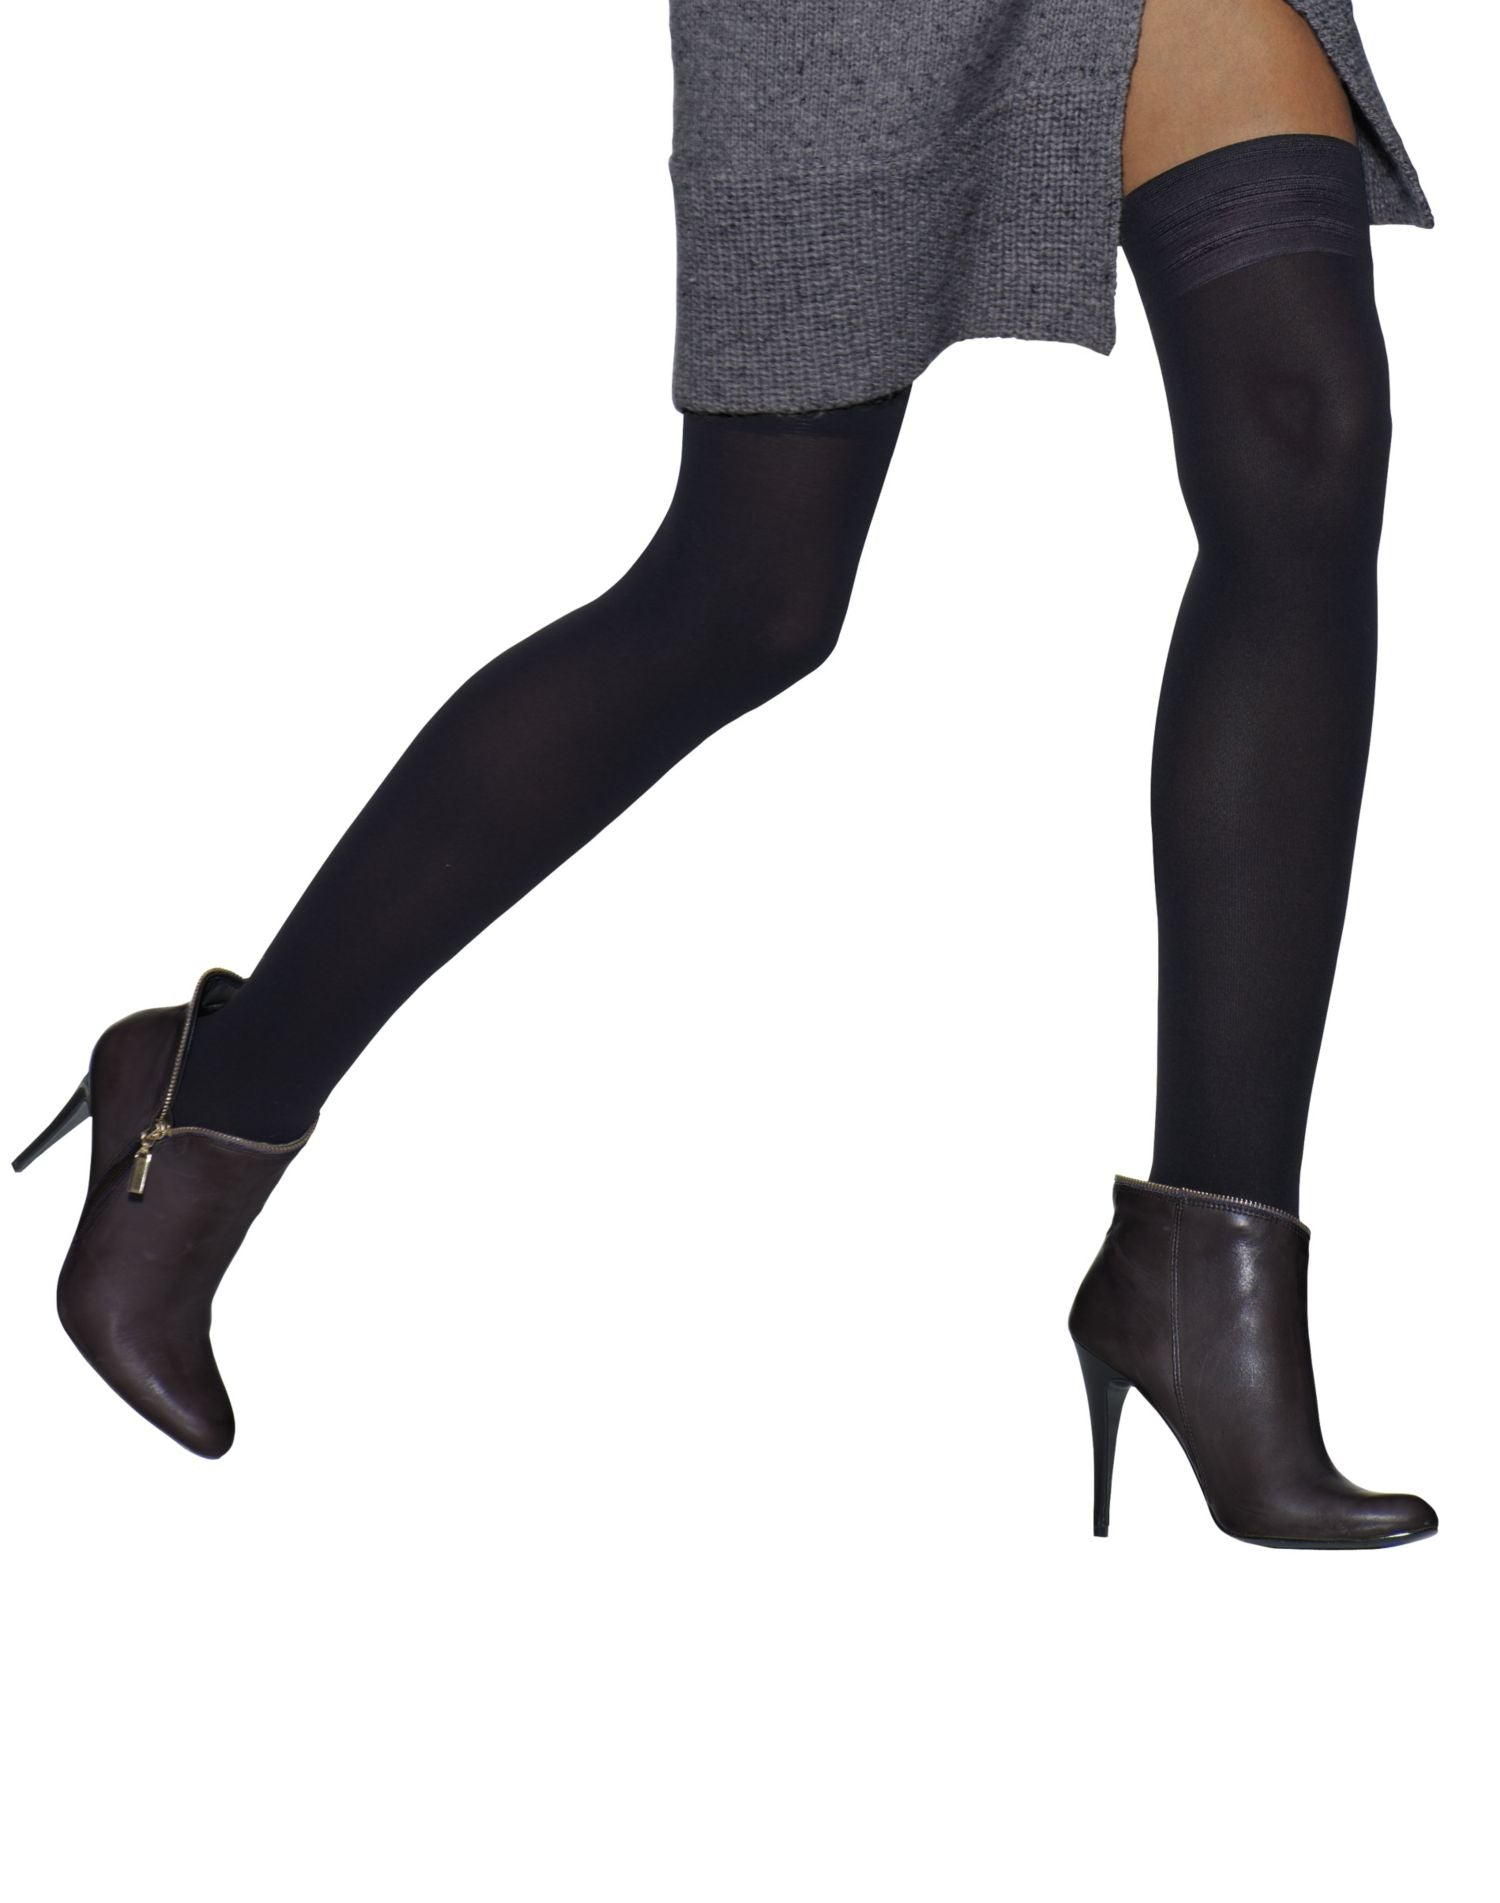 542f0bdc161 0B317 - Hanes Silk Reflections Blackout Opaque Thigh Highs 1 Pair ...